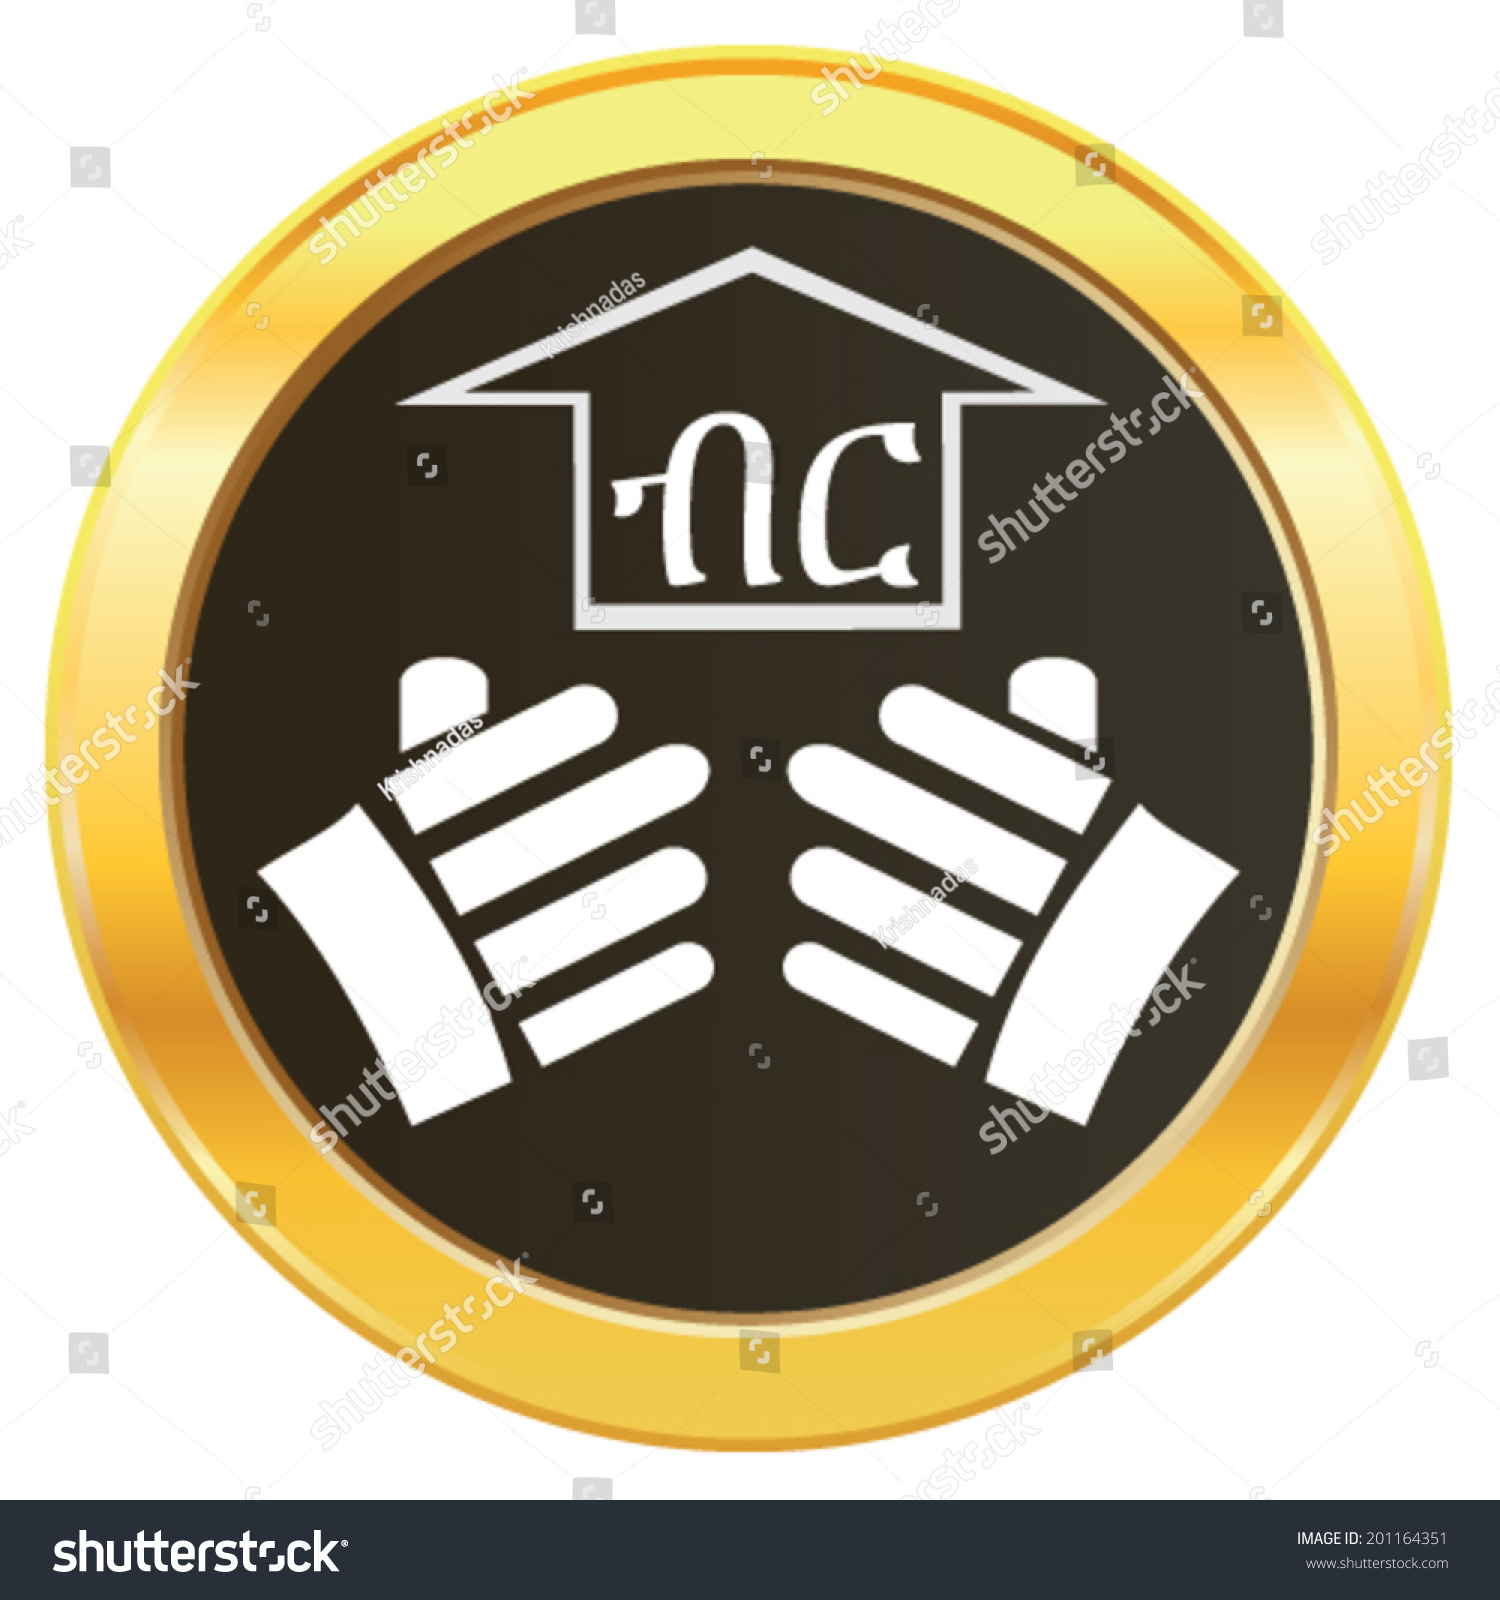 Vector Design Hand Lifting Growth Ethiopia Stock Vector Royalty